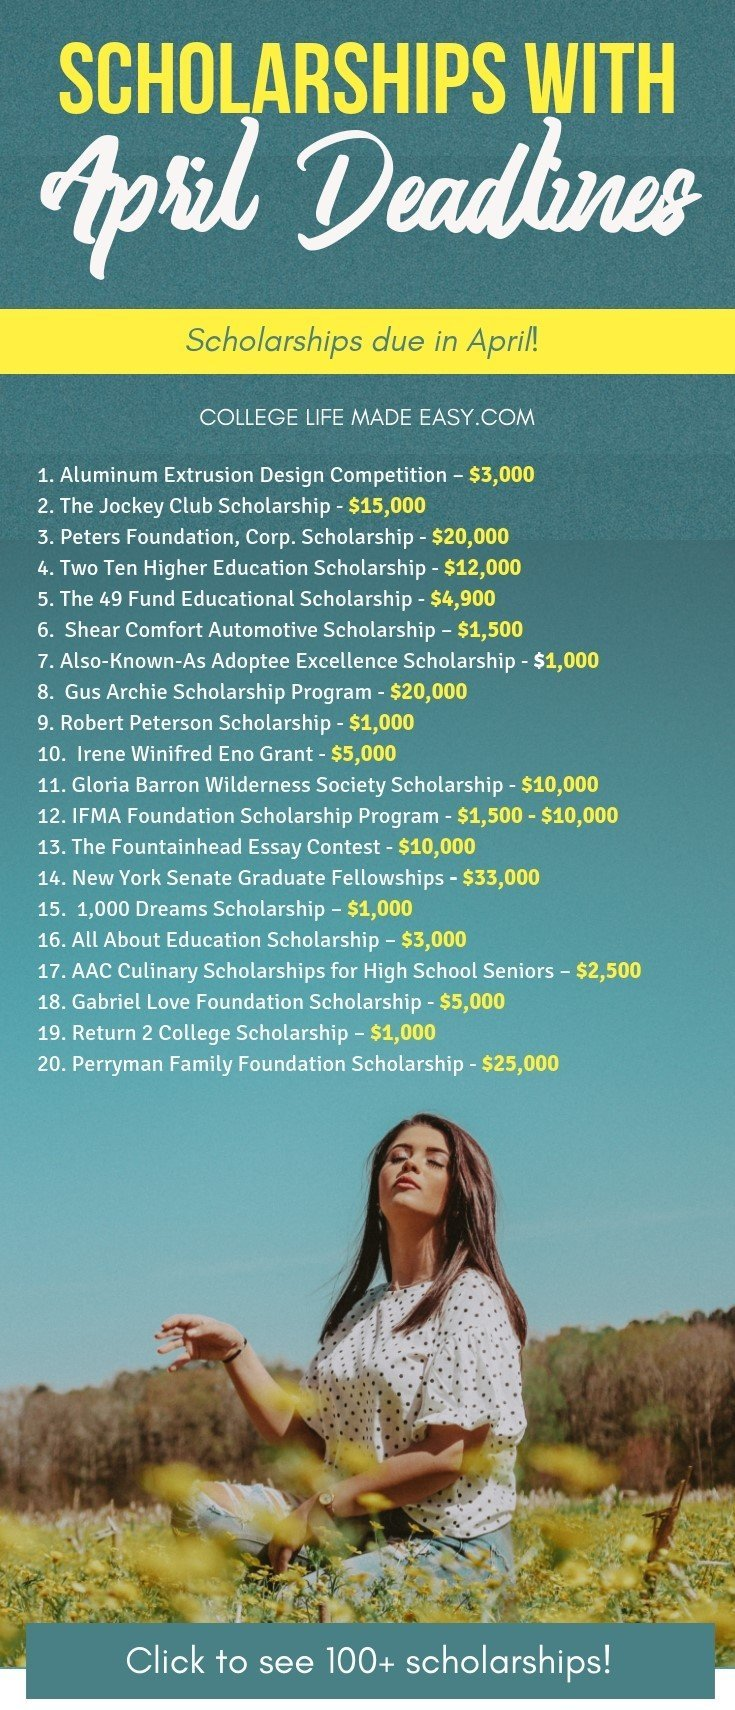 HUGE list of scholarships with April deadlines! There are over 100 college scholarships due this month. High school seniors, high school juniors, undergrads, graduate students, women - all types of students can apply to these ones! Click to get started. #college #collegelife #scholarships #collegescholarships #scholarship #senior #seniors #freshmen